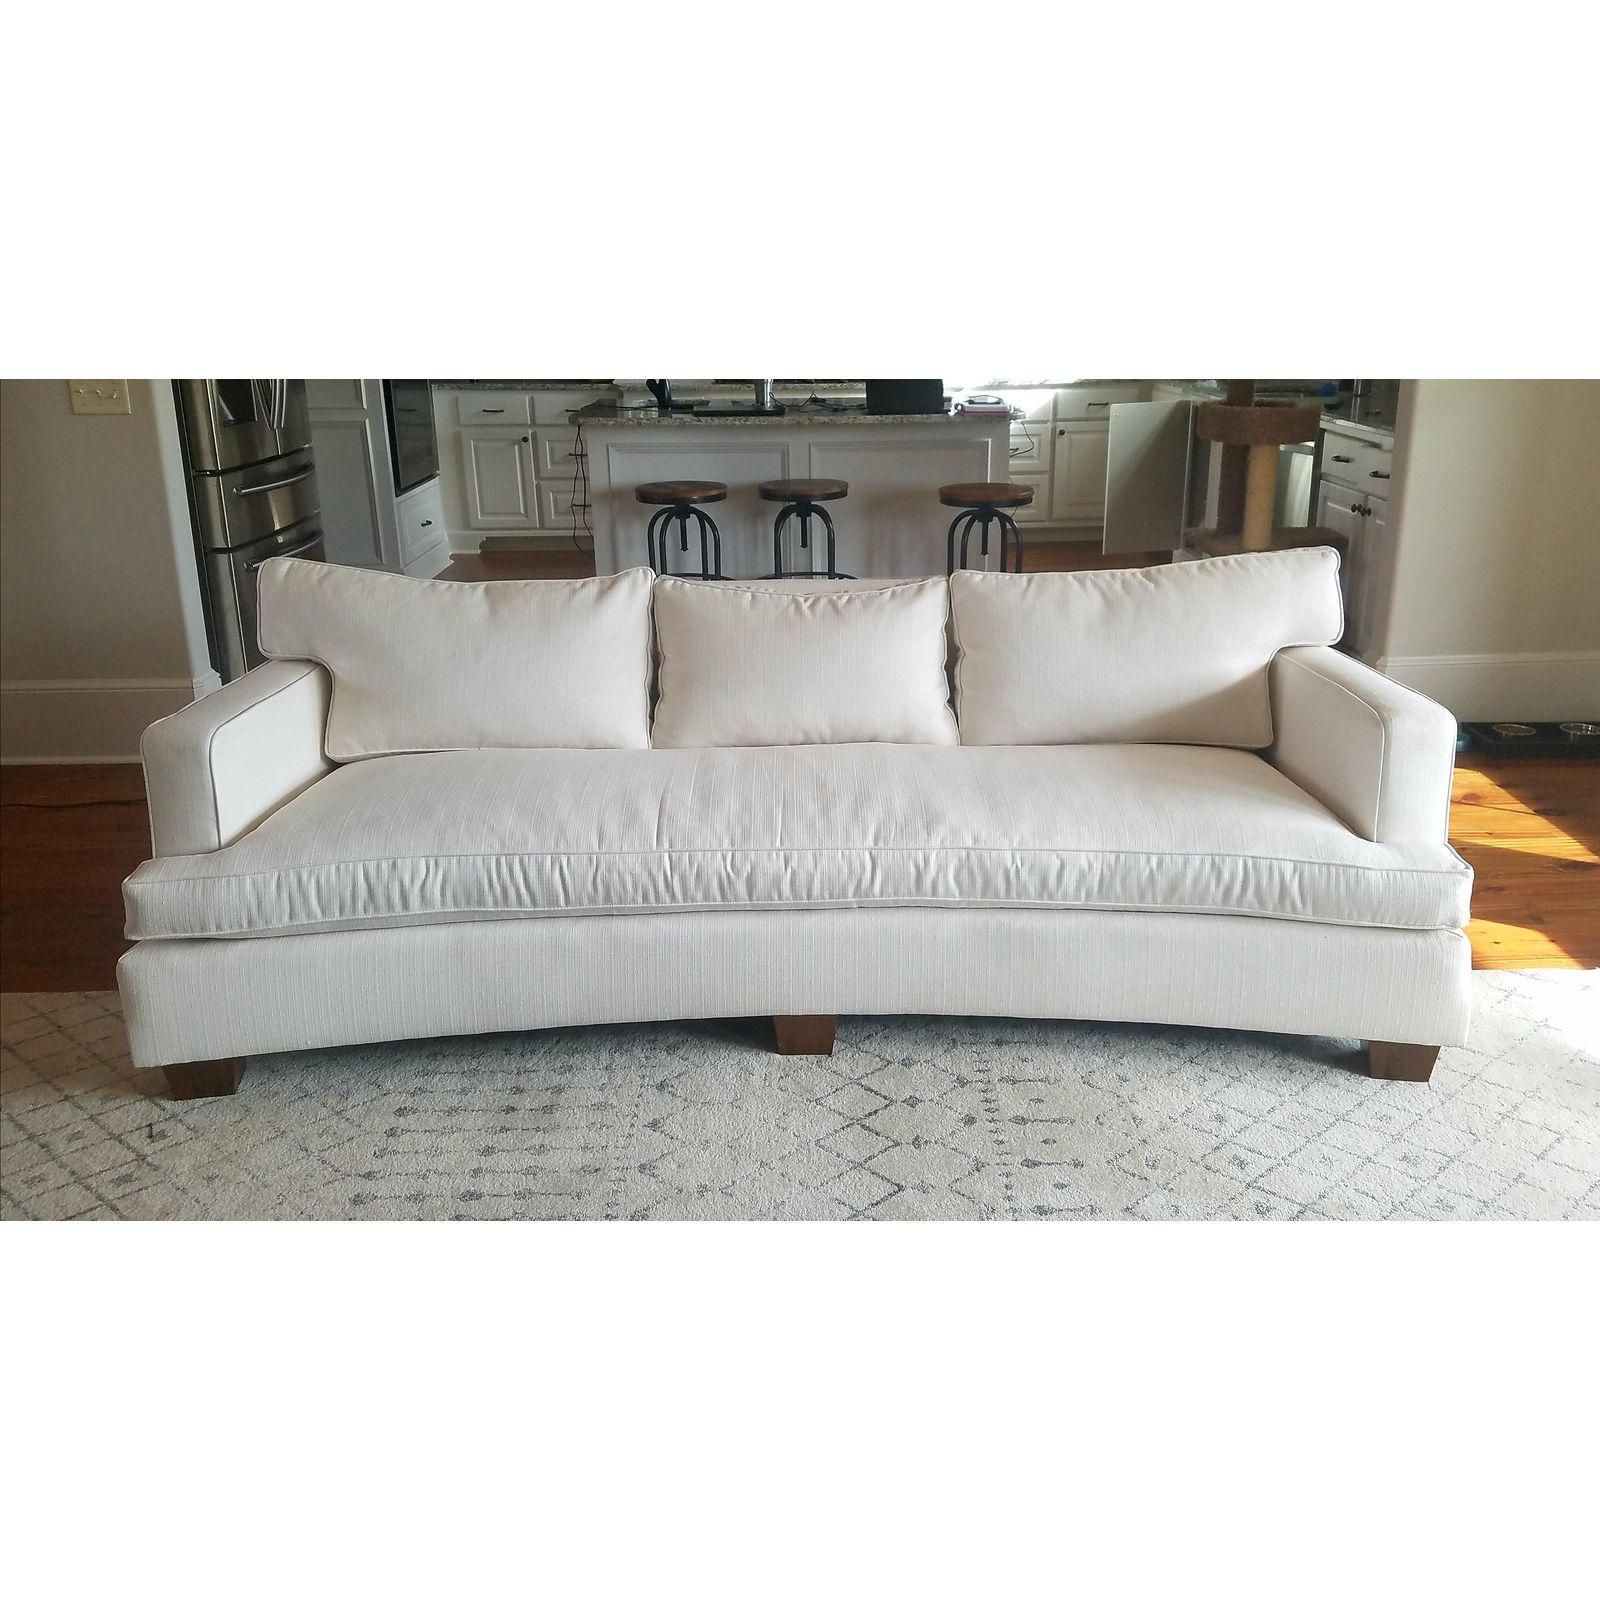 theodore alexander off white crypton fabric curved sofa